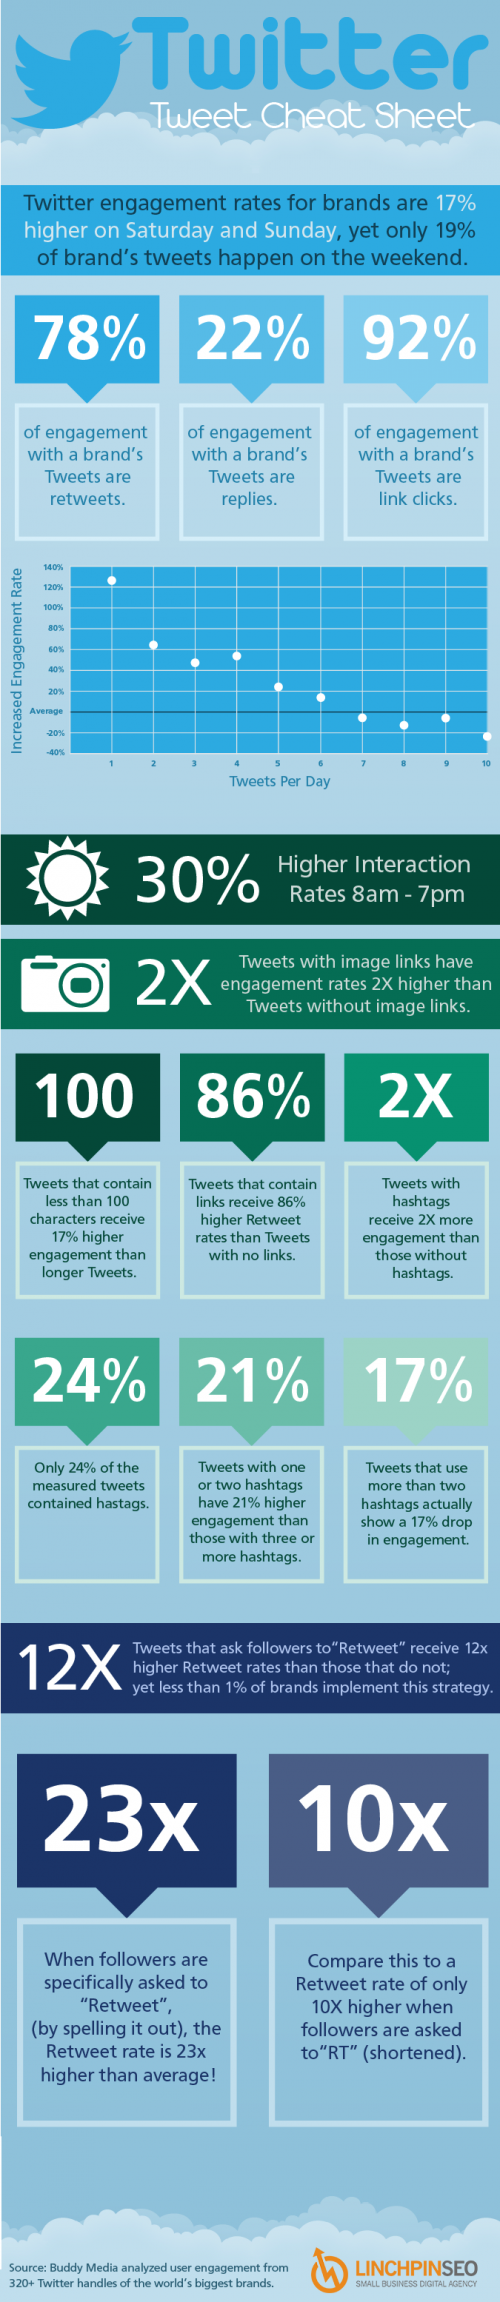 <h3>Maximize your marketing efforts with this Twitter Cheat Sheet</h3>